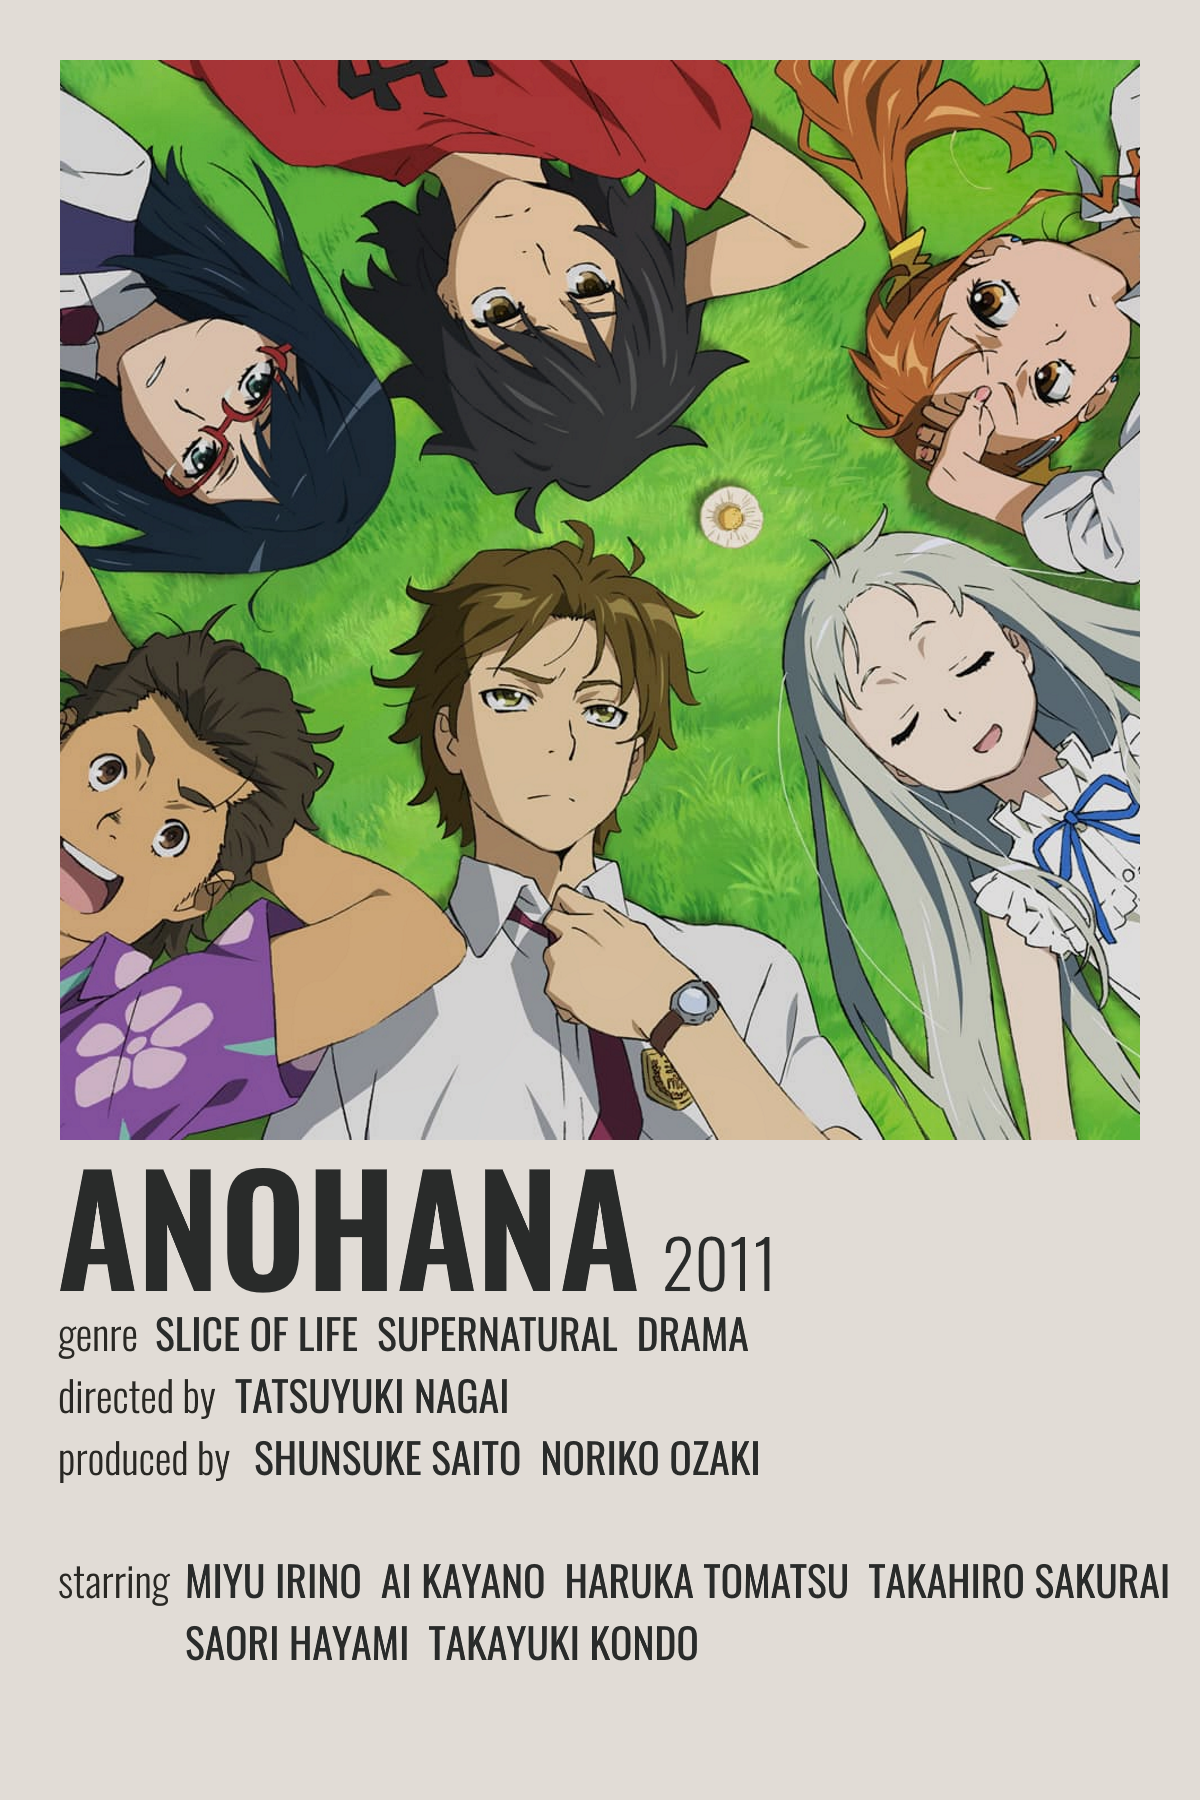 anohana poster in 2021 anime canvas